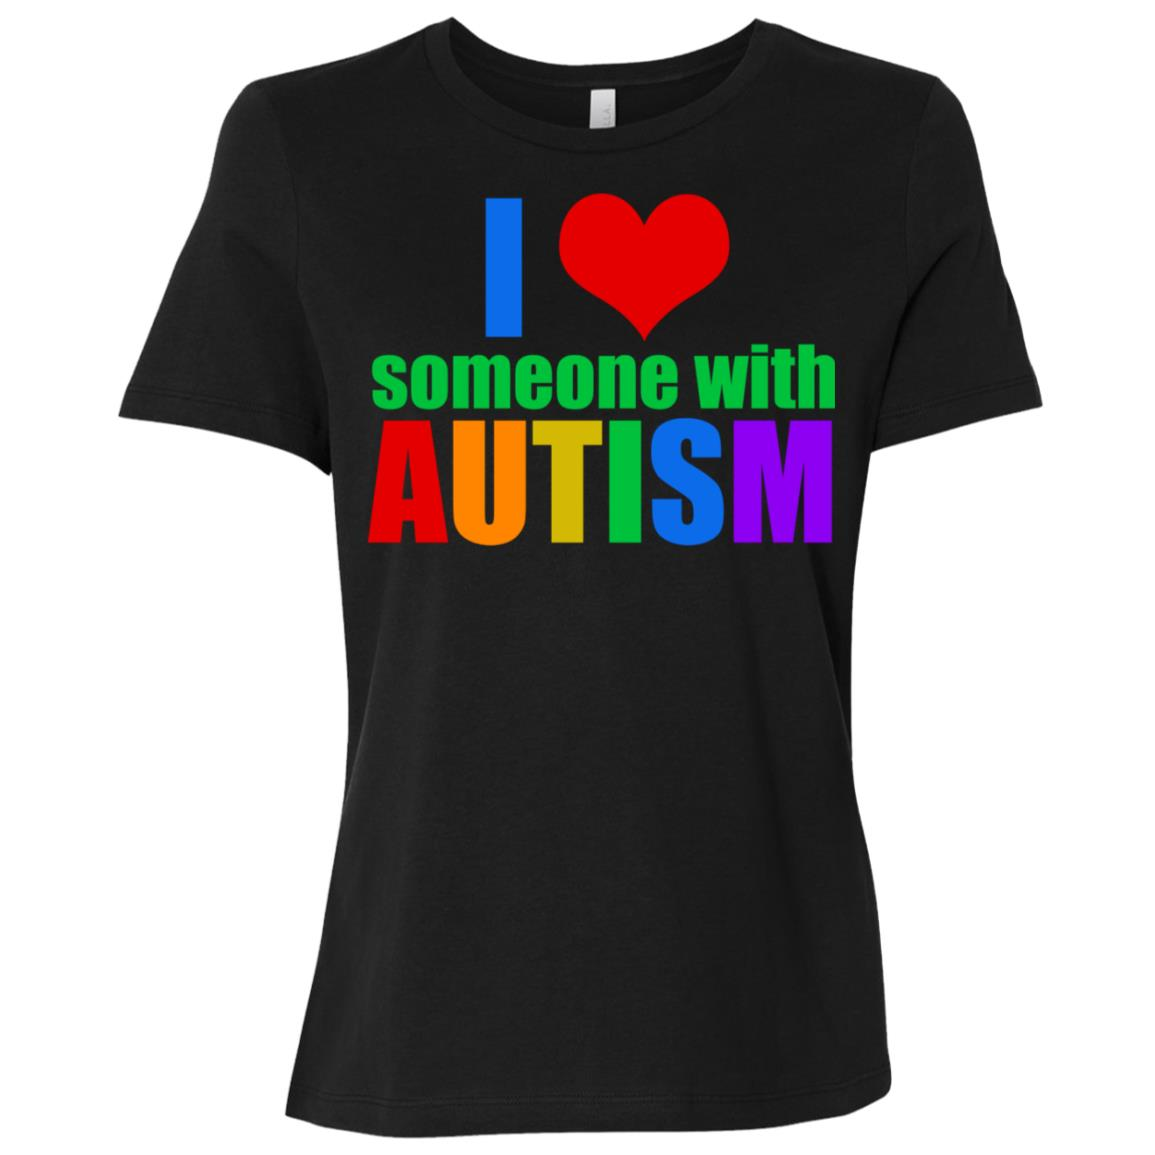 I Love Someone with Autism Women Short Sleeve T-Shirt